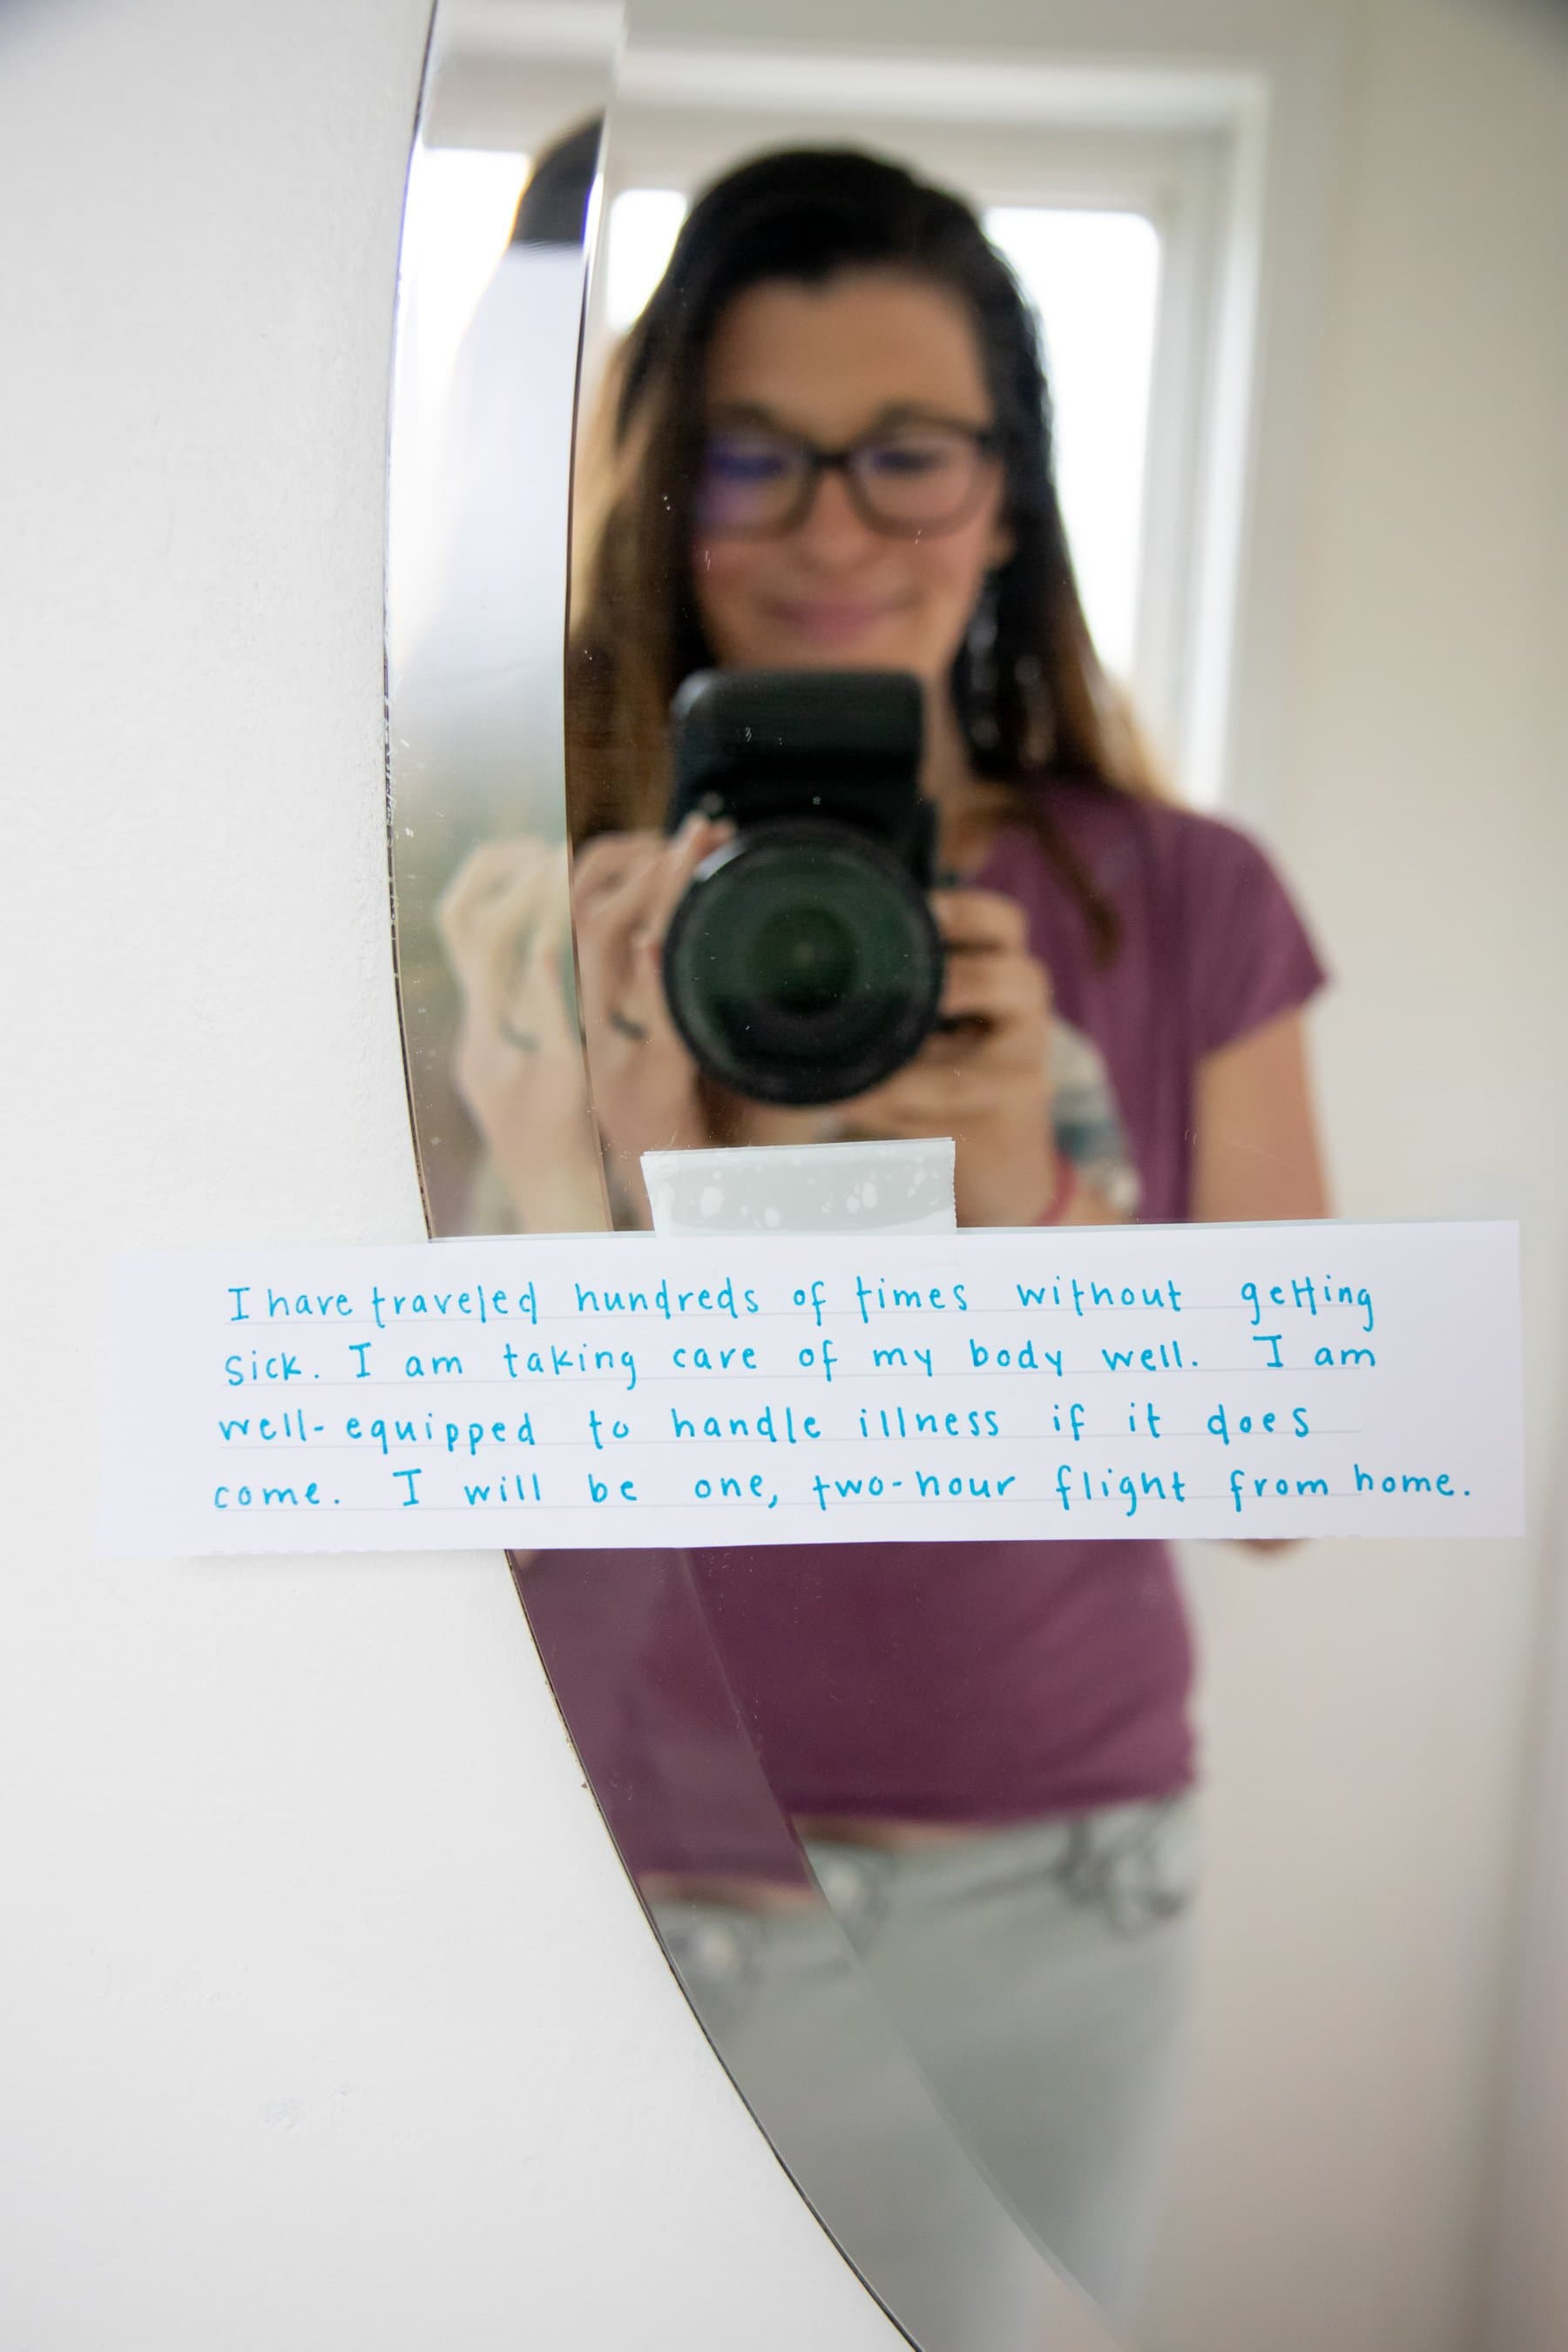 Shot of a Worry Time hot thought taped to a mirror, with a woman holding a camera in the reflection